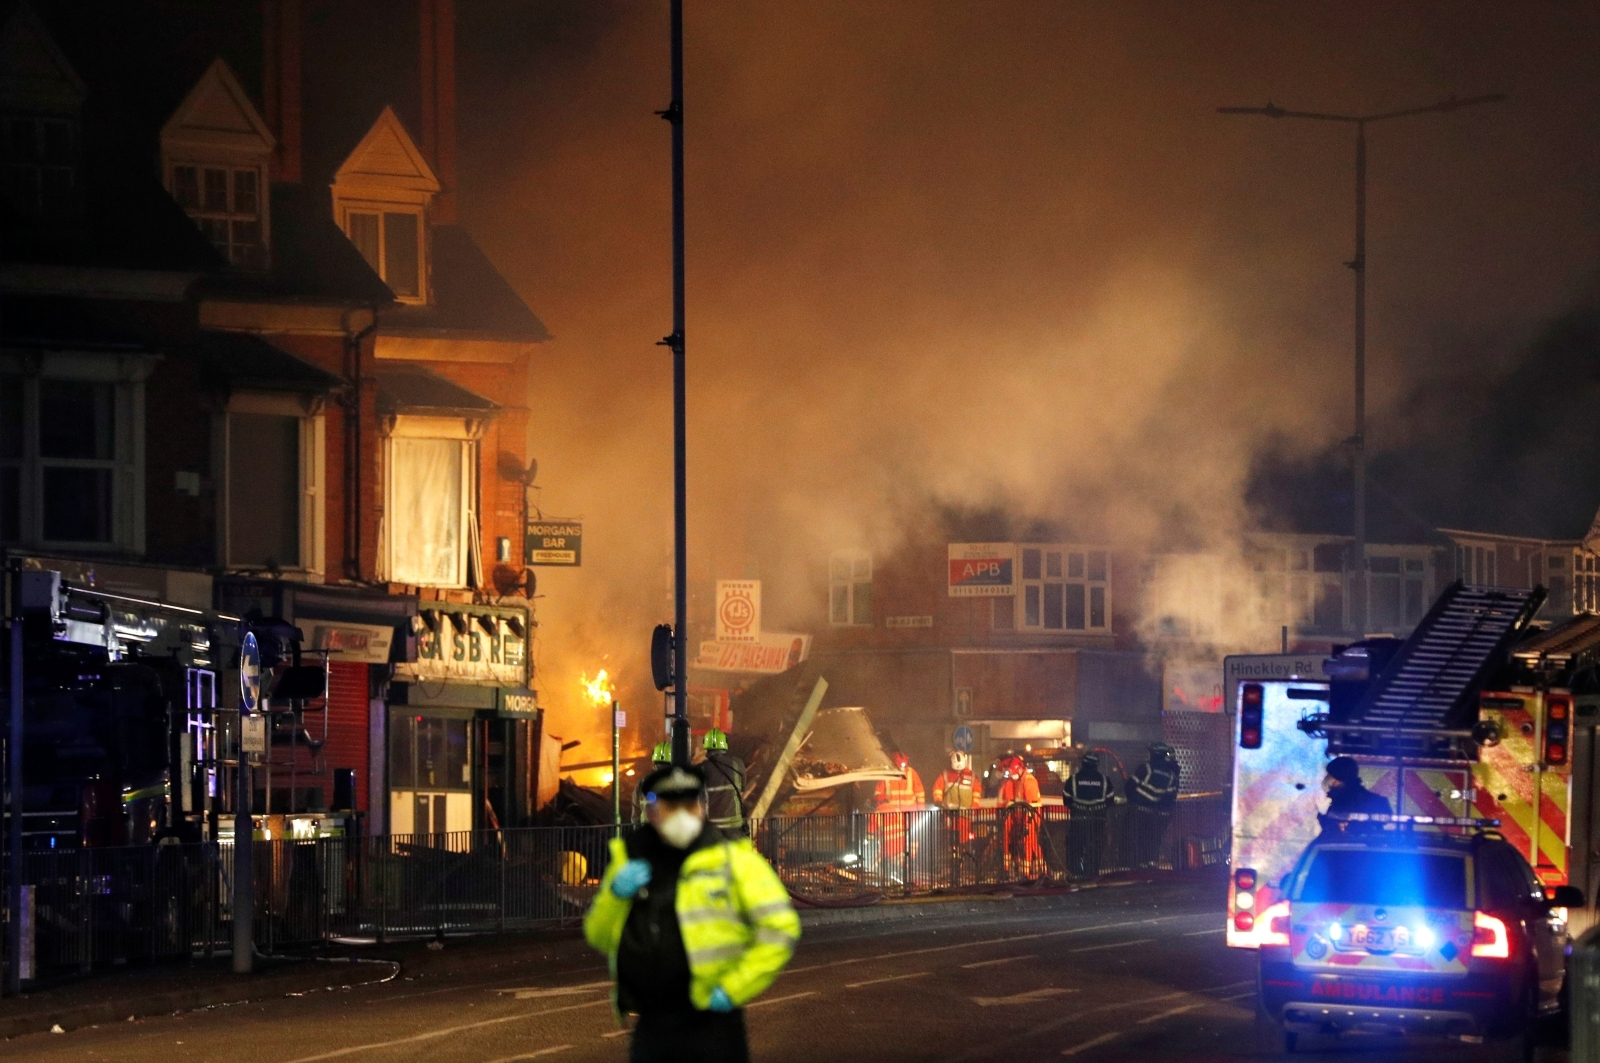 Three men arrested on suspicion of manslaughter over deadly Leicester fire